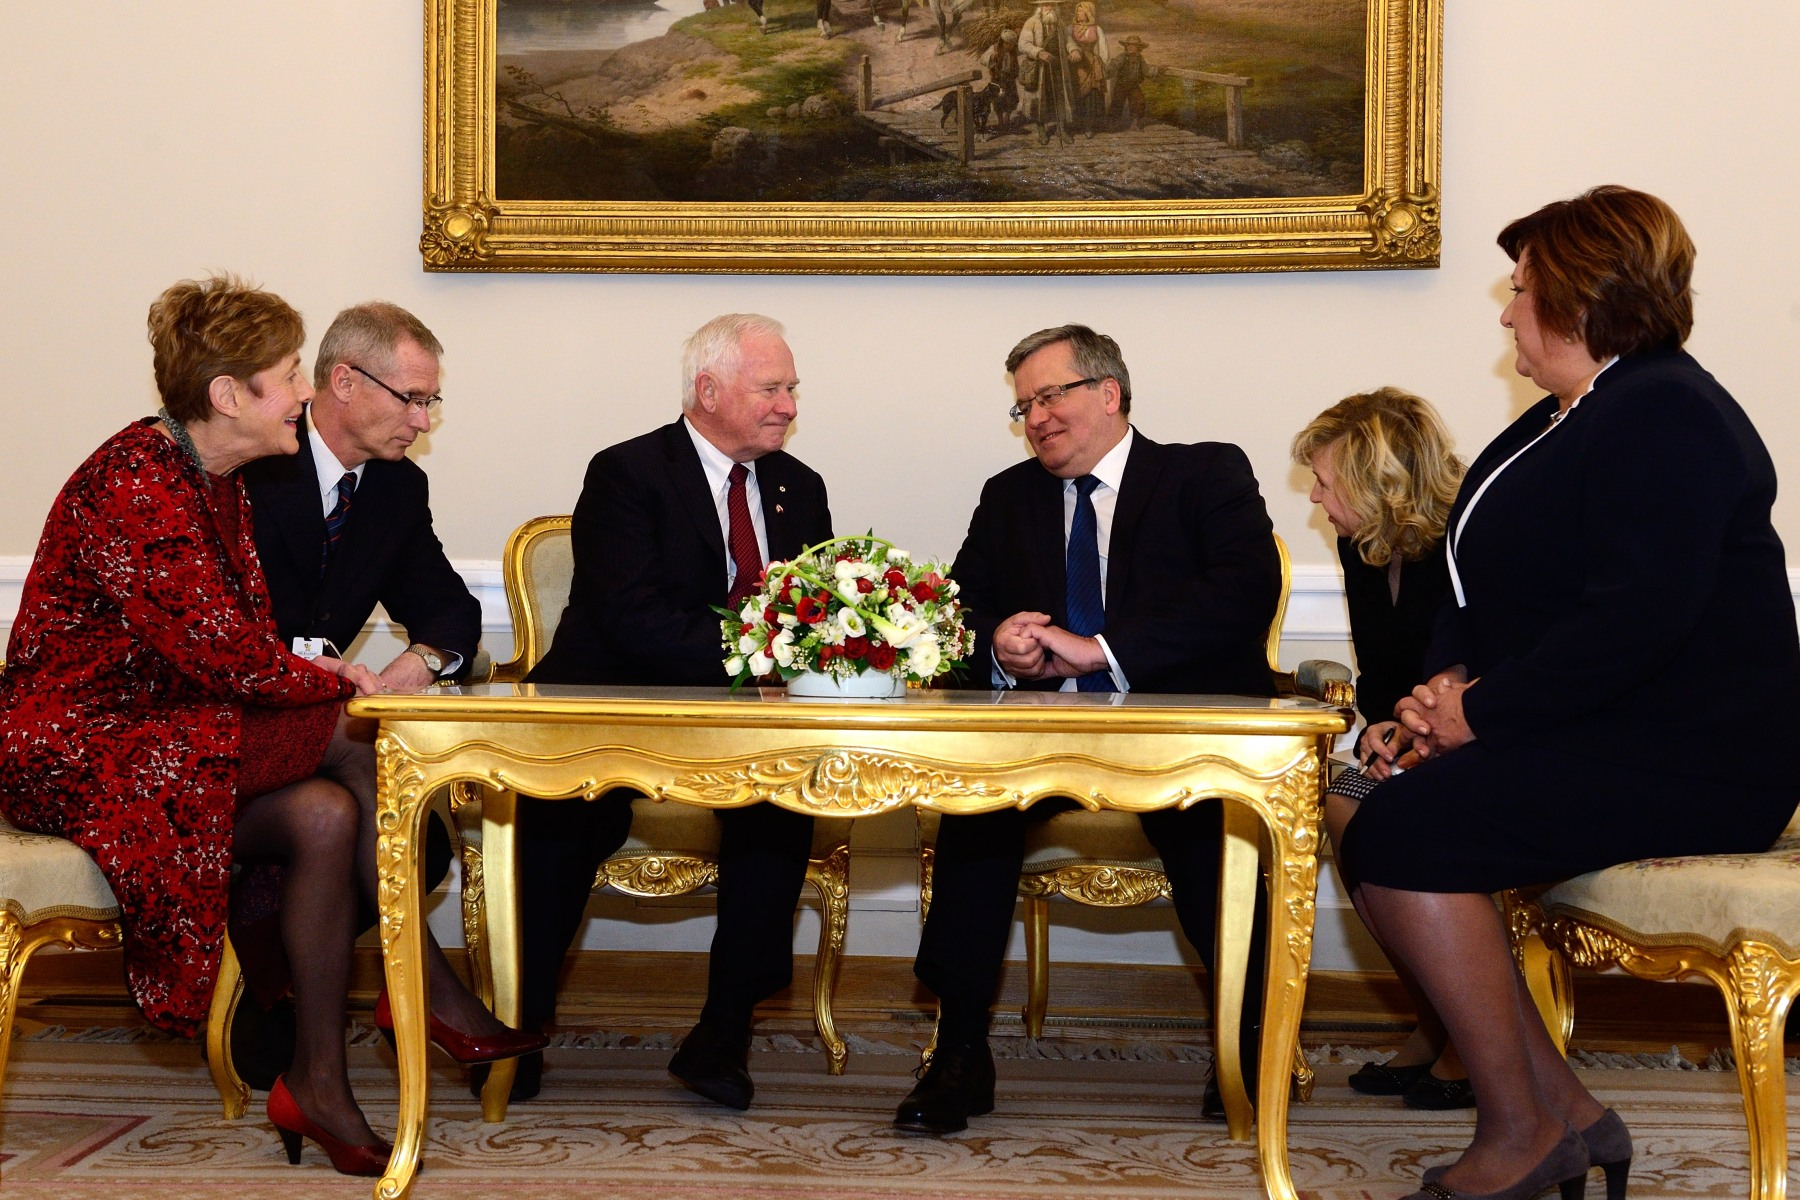 Their Excellencies also met with President Komorowski and First Lady Anna Komorowska to discuss the robust bilateral relations between Canada and Poland, based on historic, military and people-to-people ties.